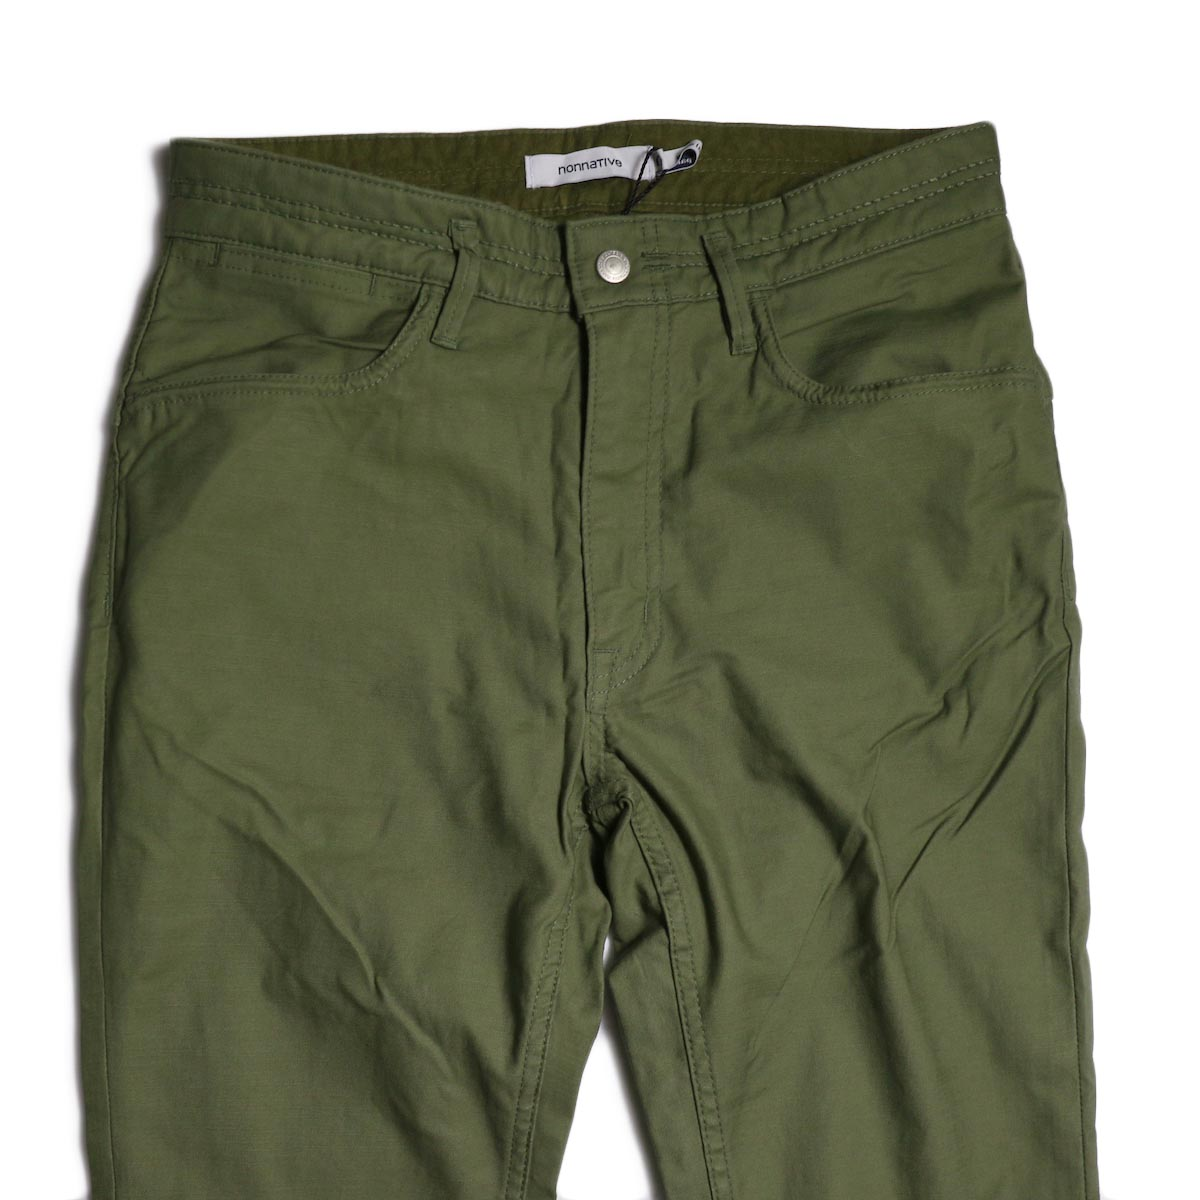 nonnative / DWELLER 5P JEANS DROPPED FIT C/P BACK SATIN STRETCH -Olive ウエスト